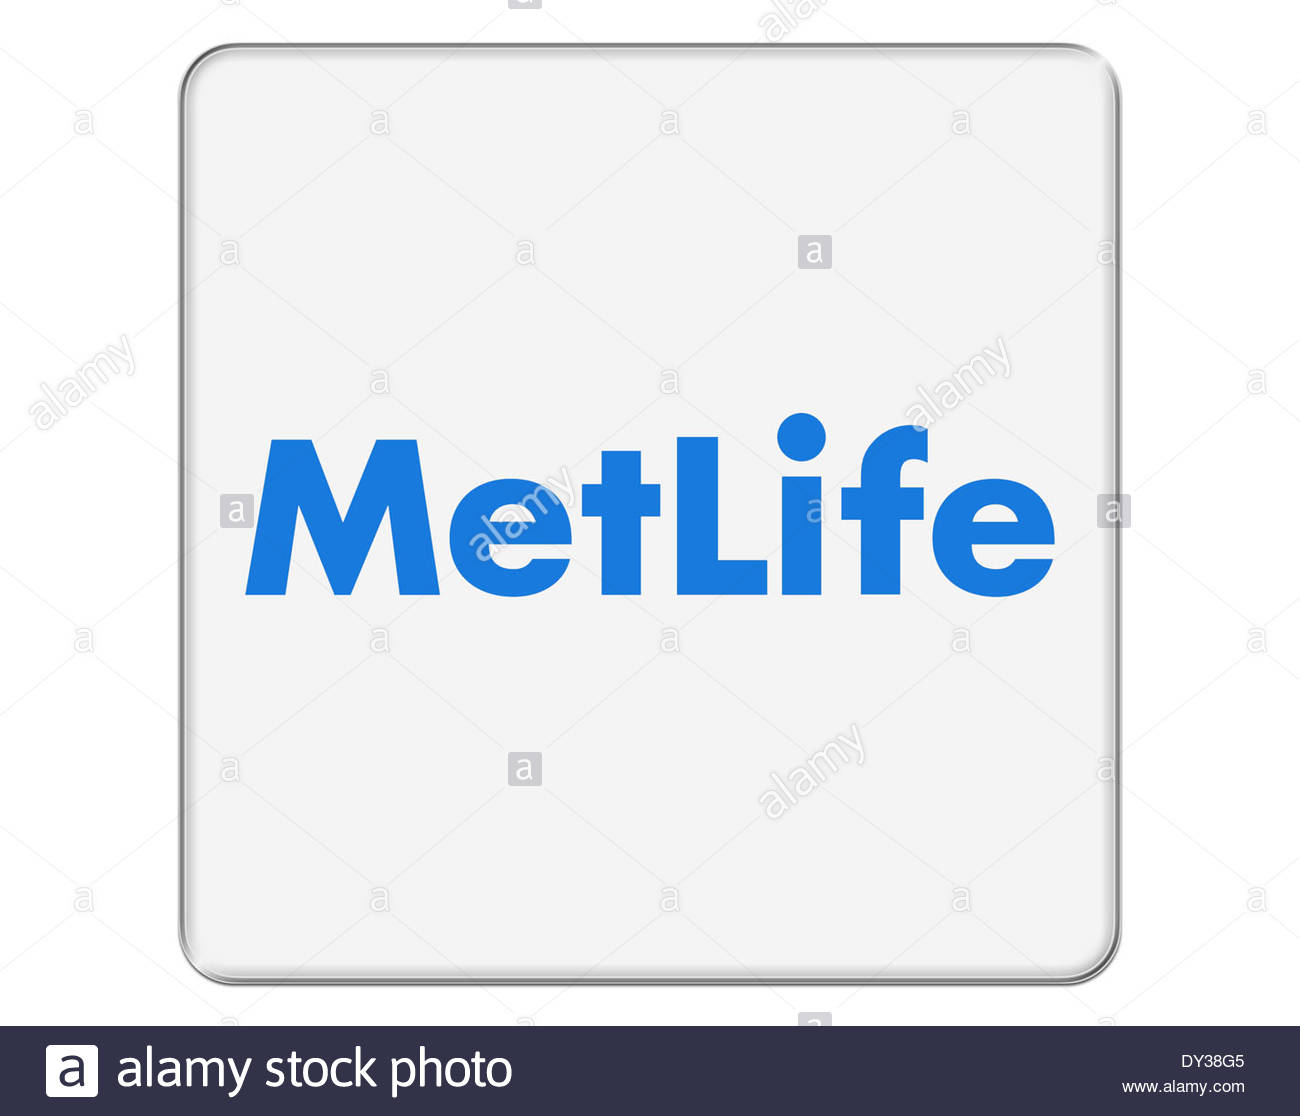 Metlife icon logo isolated path - Stock Image